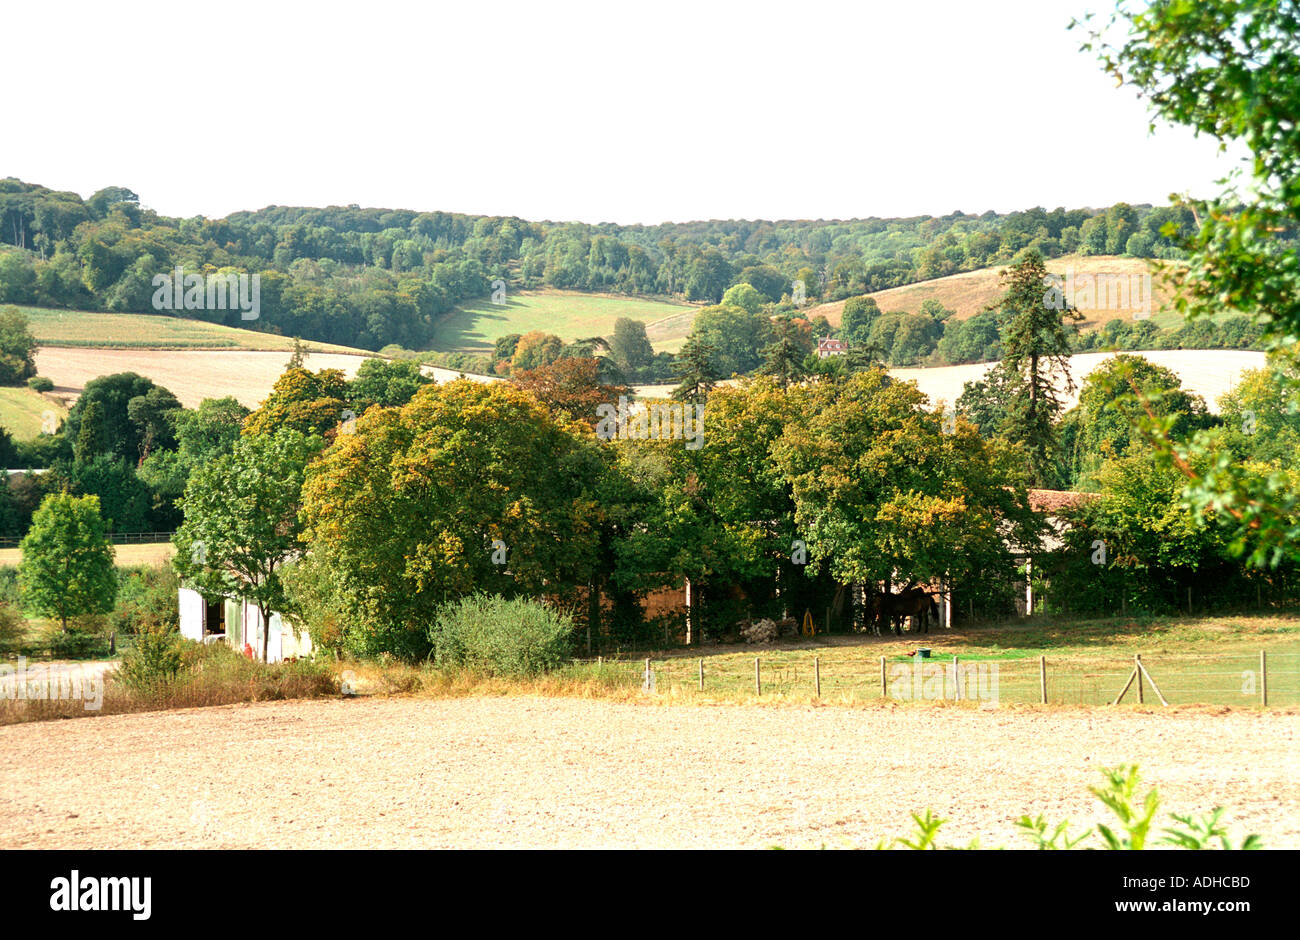 English Countryside scene of many films and TV shows - Stock Image